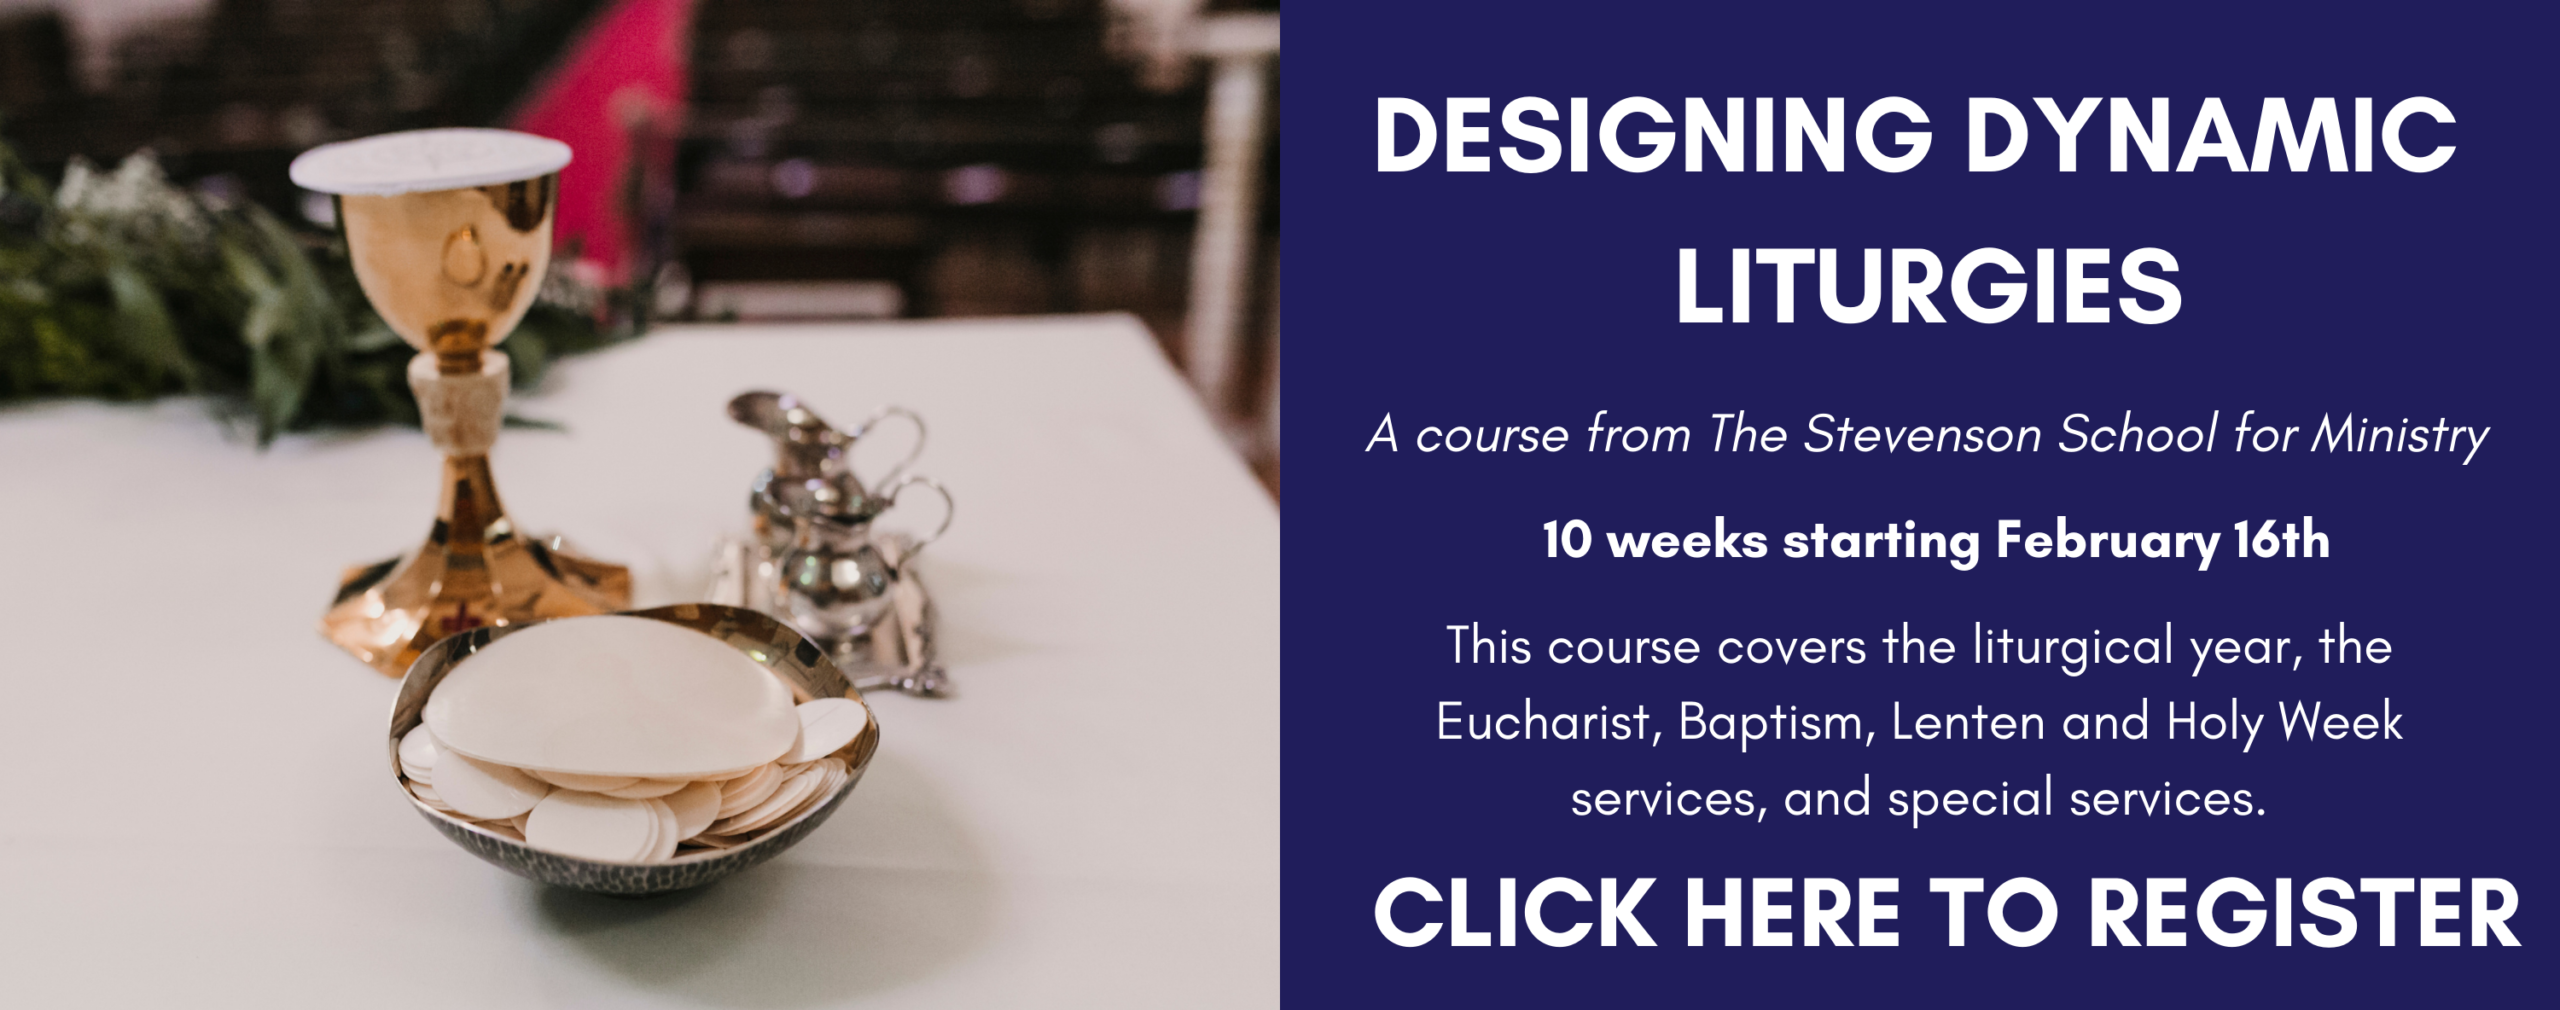 Dynamic Liturgies Course-- click here to register